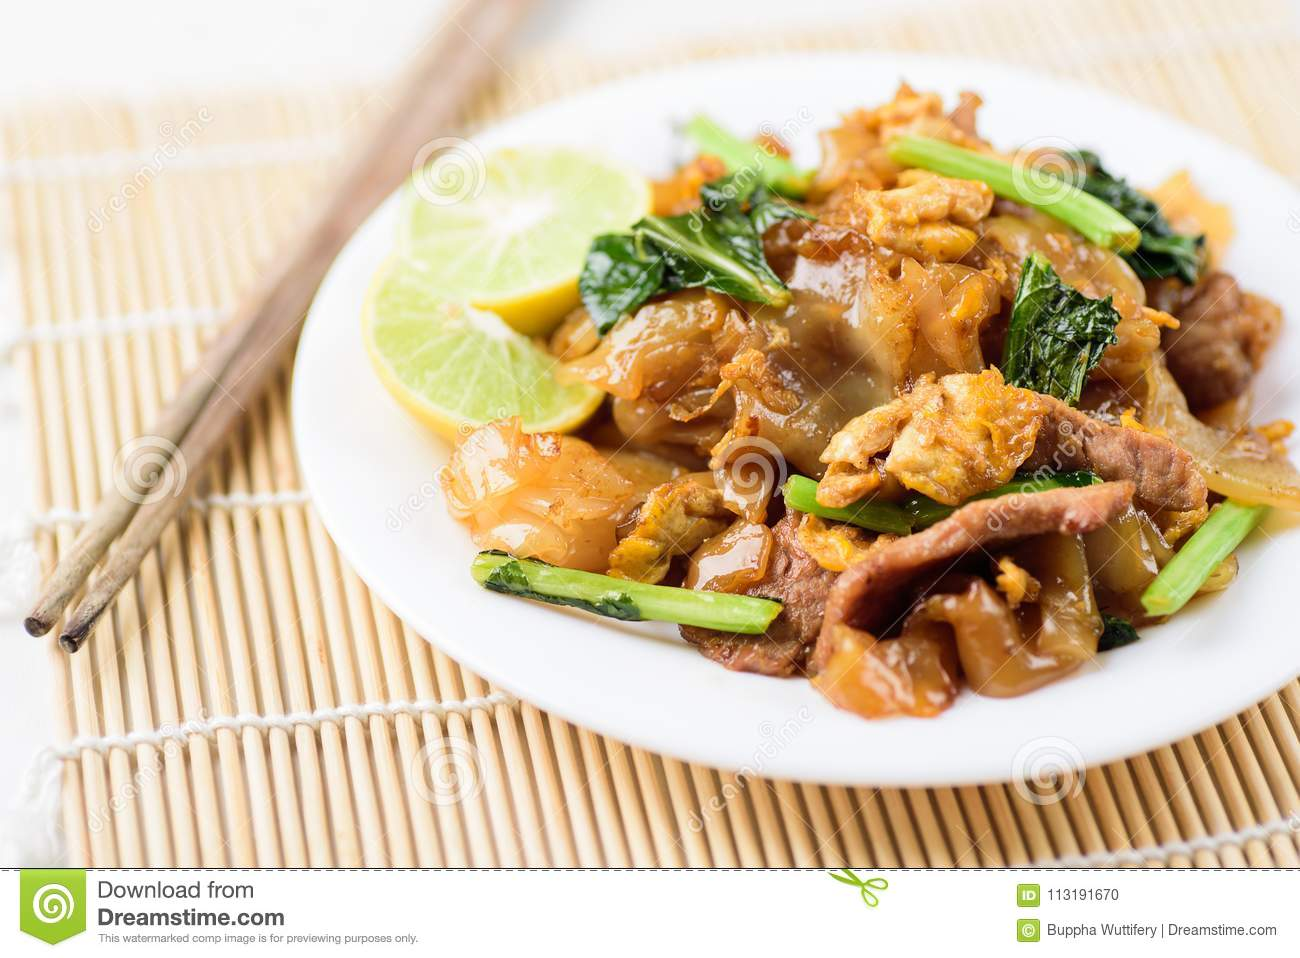 Thai food, stir fried rice noodles in soy sauce